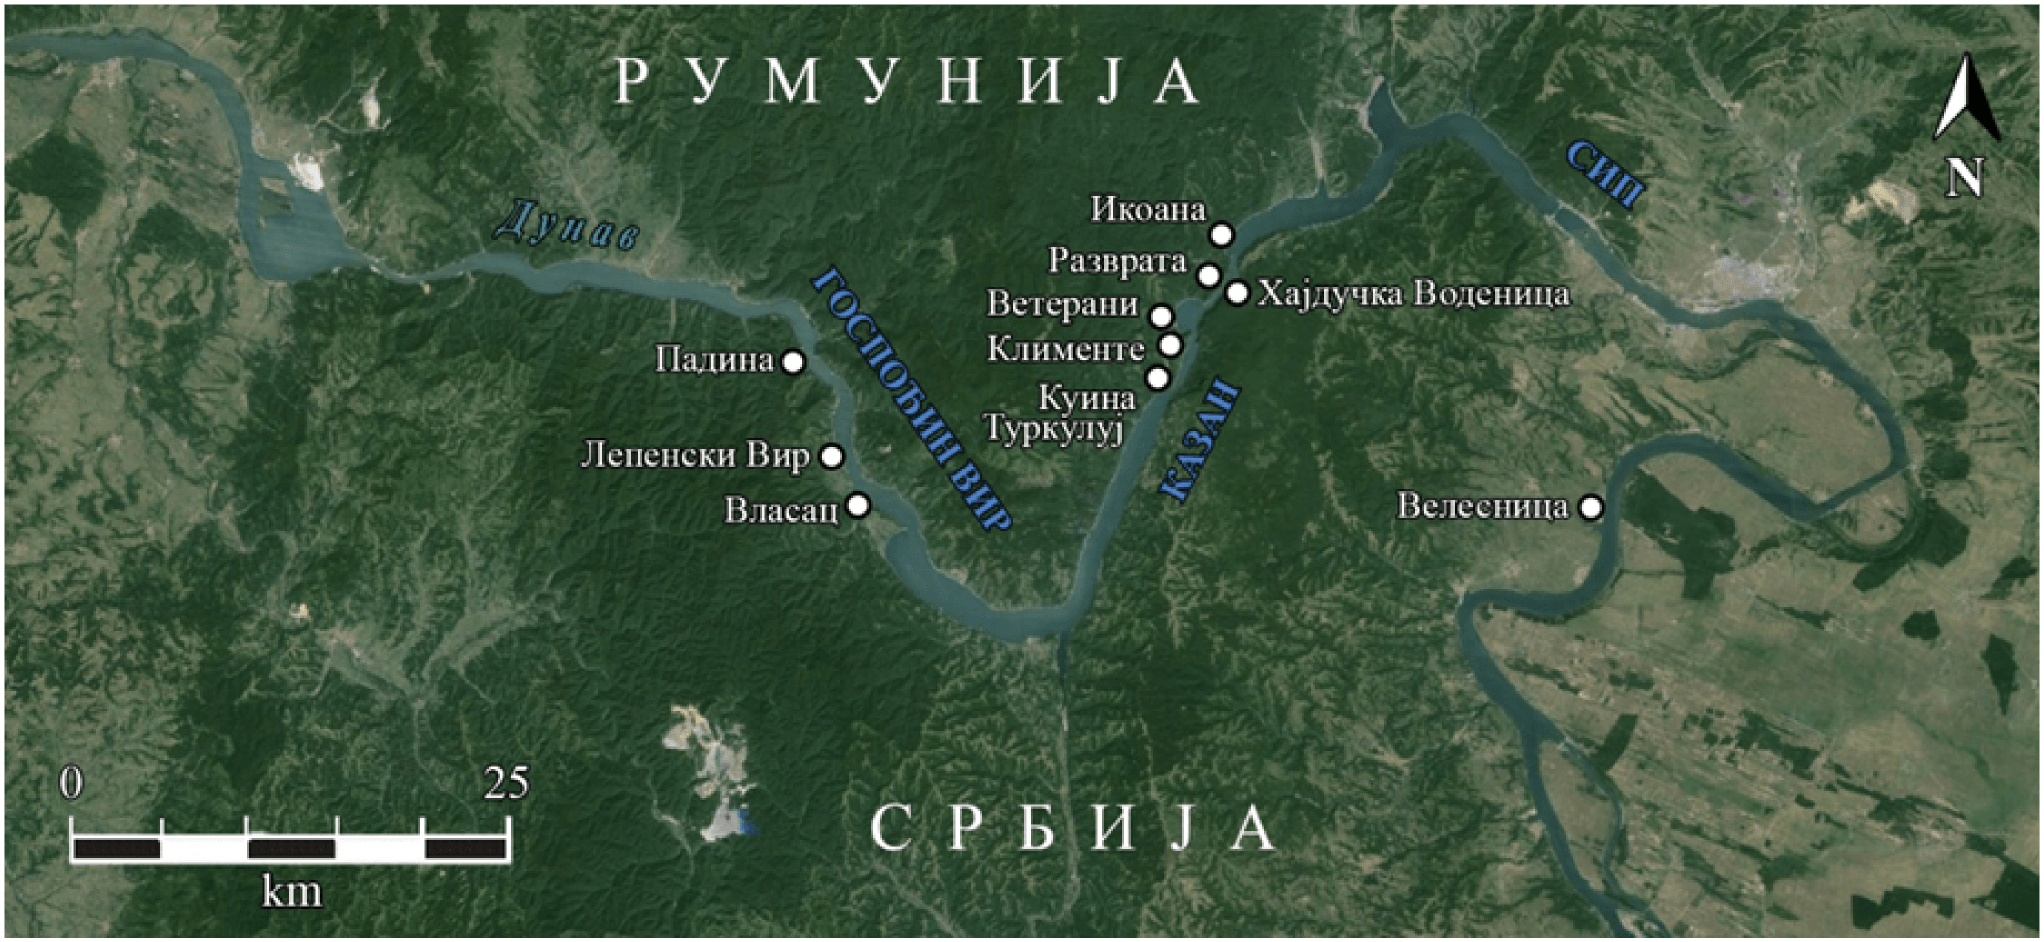 Map of the Đerdap Gorge (the Iron Gates Gorge), depicting the archaeological sites dating from the Mesolithic and Neolithic periods (9500–5500 BC) which are mentioned here.